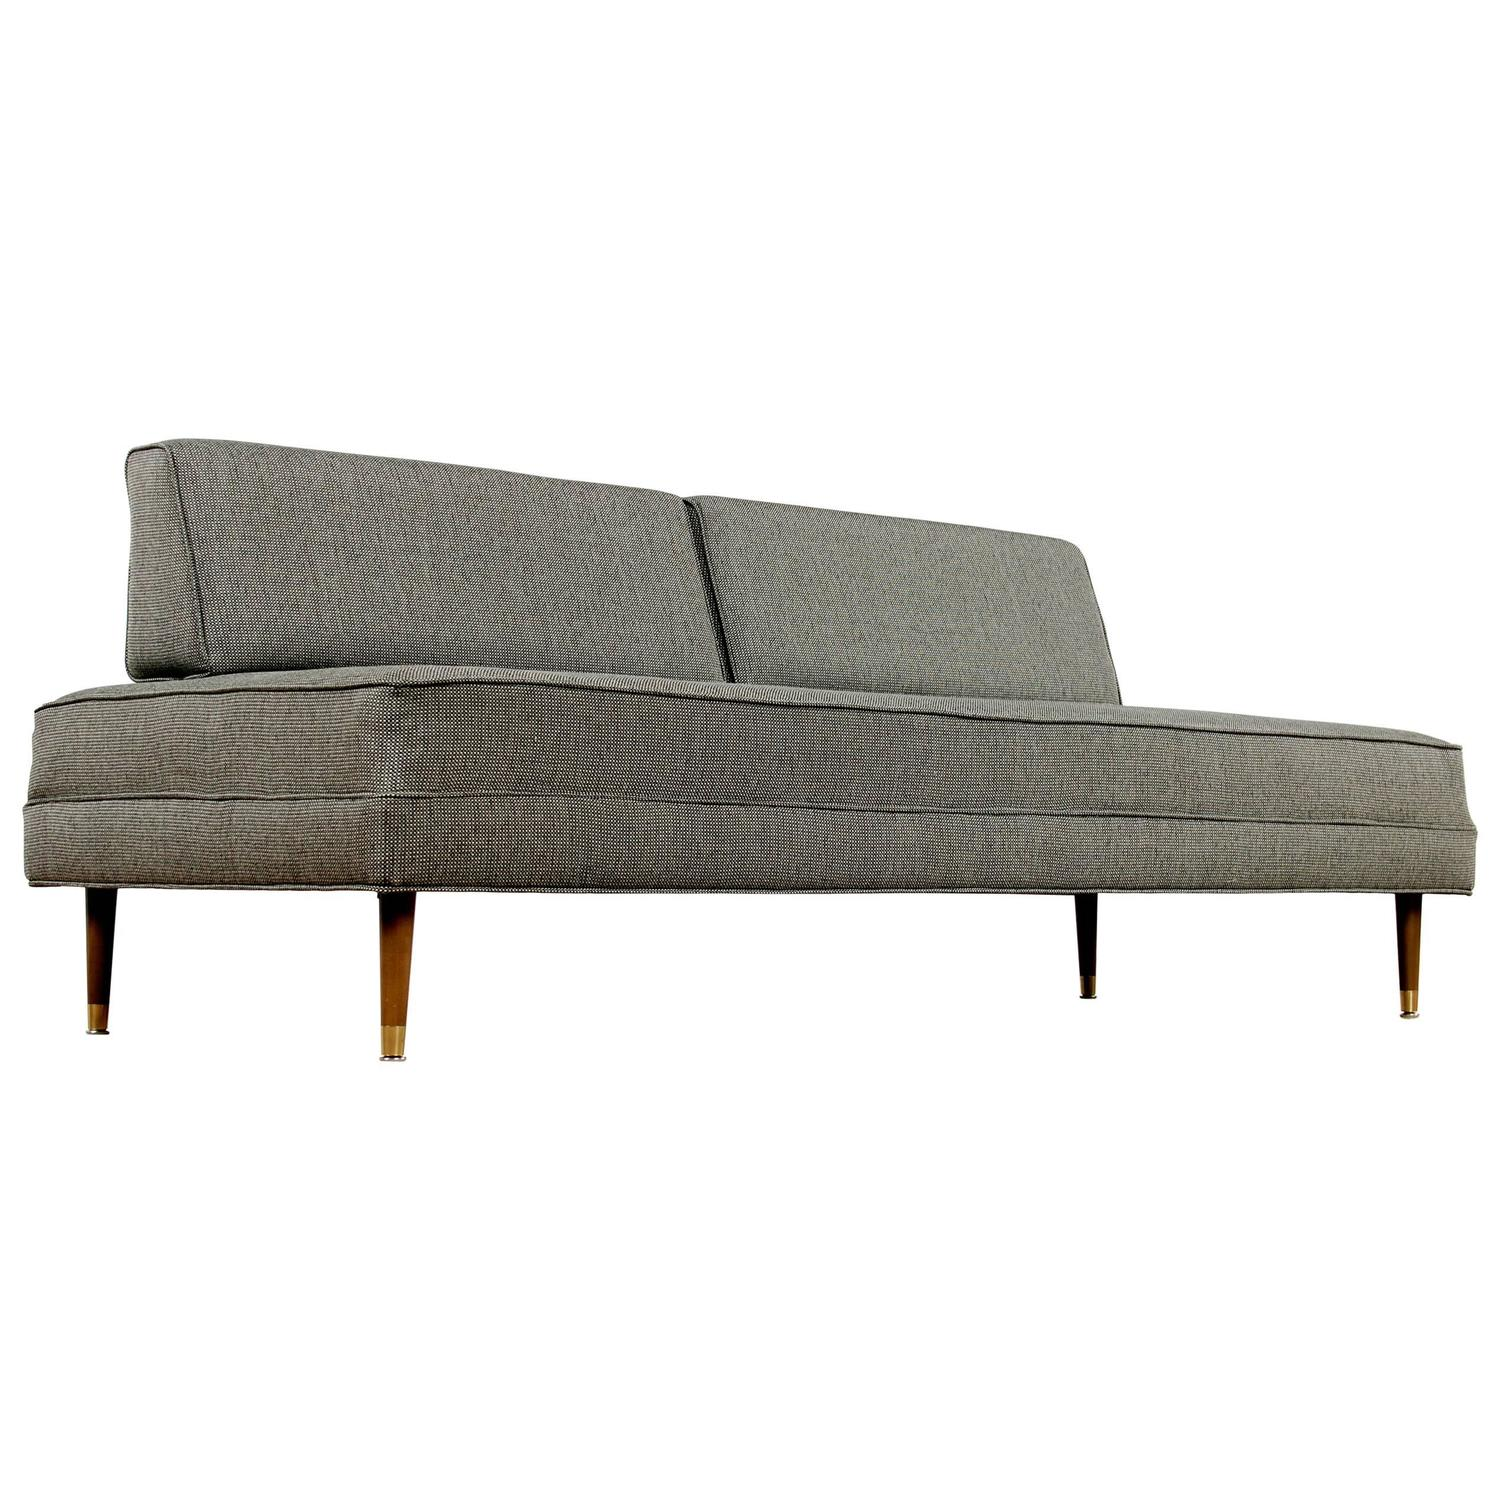 Mid Century Modern Sofa For Sale: Restored Mid-Century Modern Daybed Sofa For Sale At 1stdibs